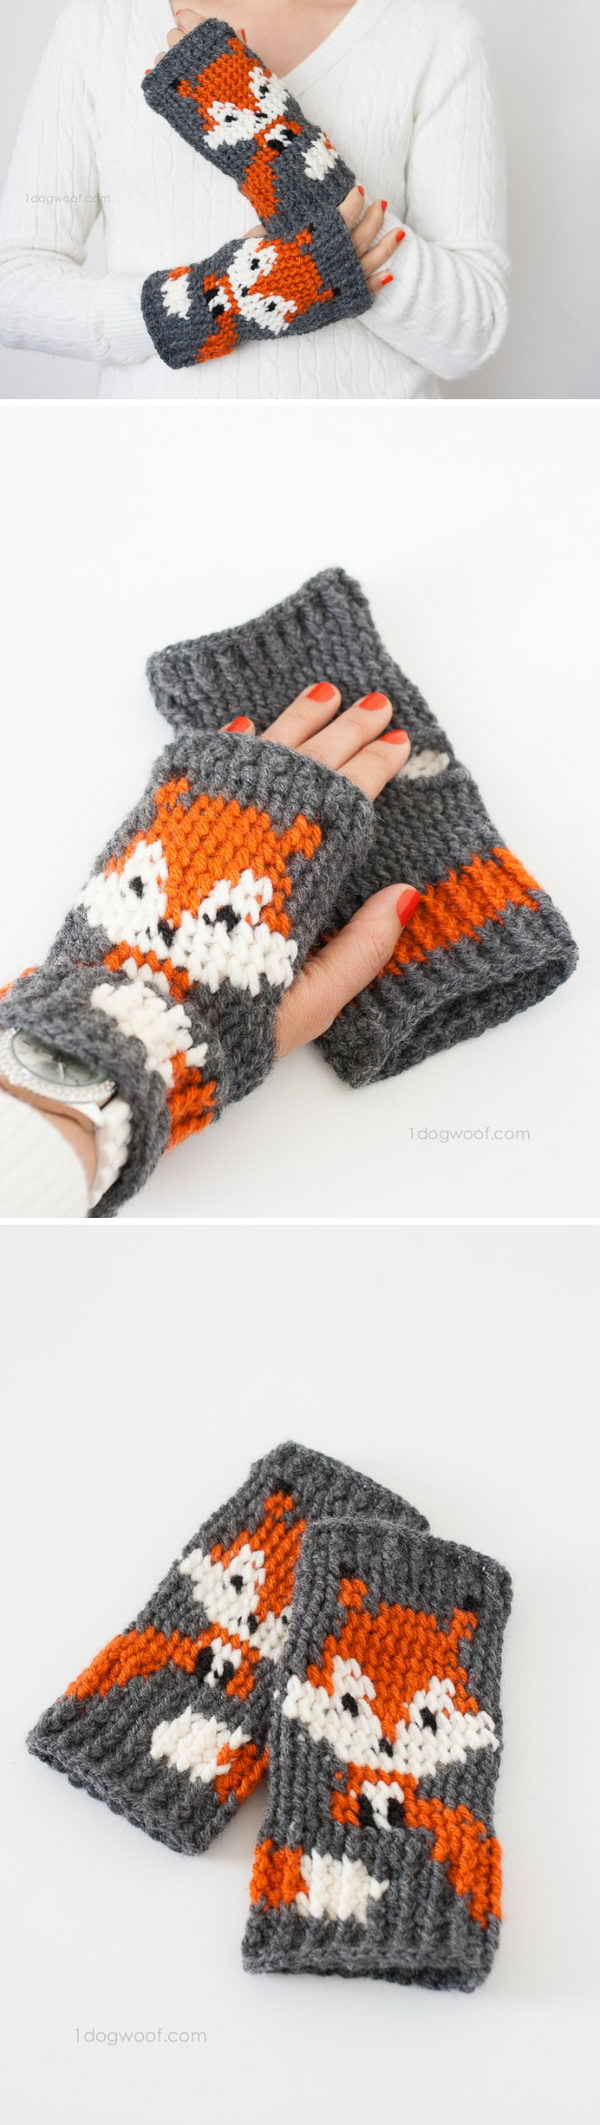 Foxy Fingerless Gloves.